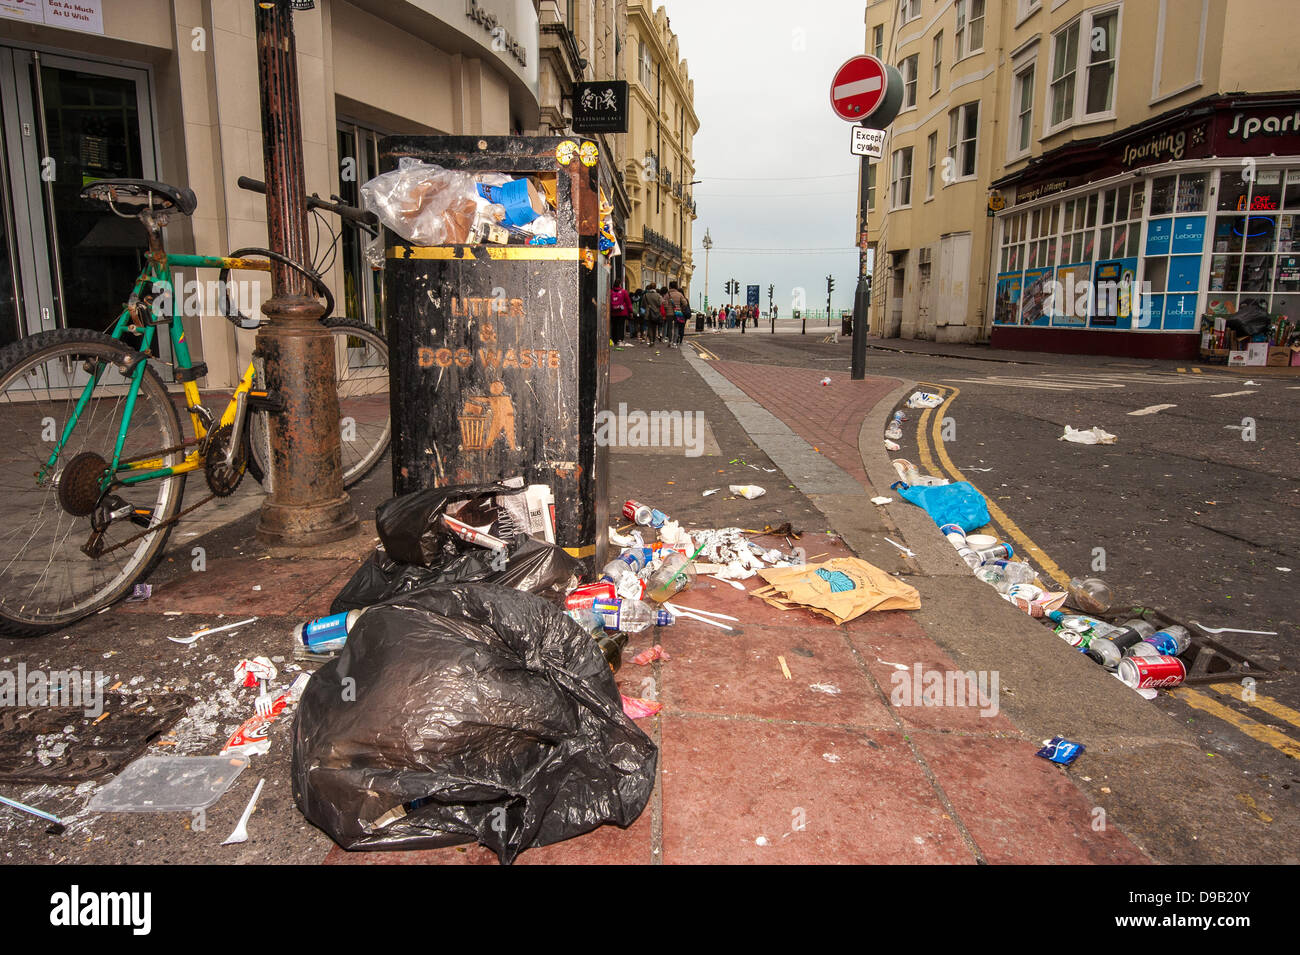 Brighton, UK. 17th June, 2013. Sin Bin City -Rubbish strewn East Street in Brighton.  The city's cleaners are - Stock Image